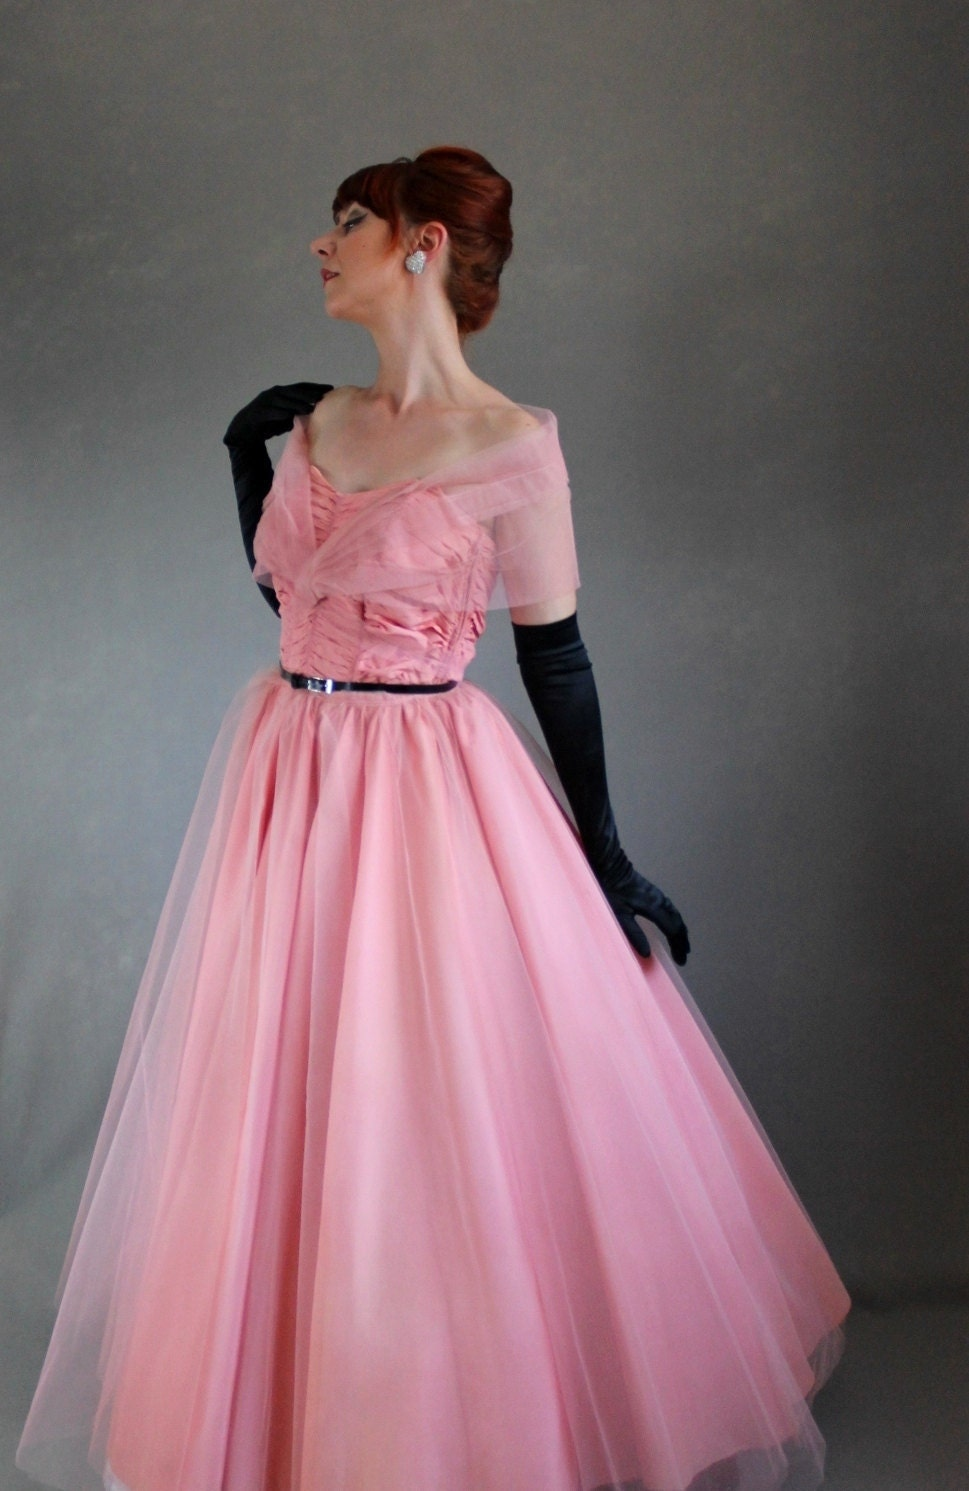 Sale 1950s Pink Party Prom Dress Mad Men Fashion By Gogovintage